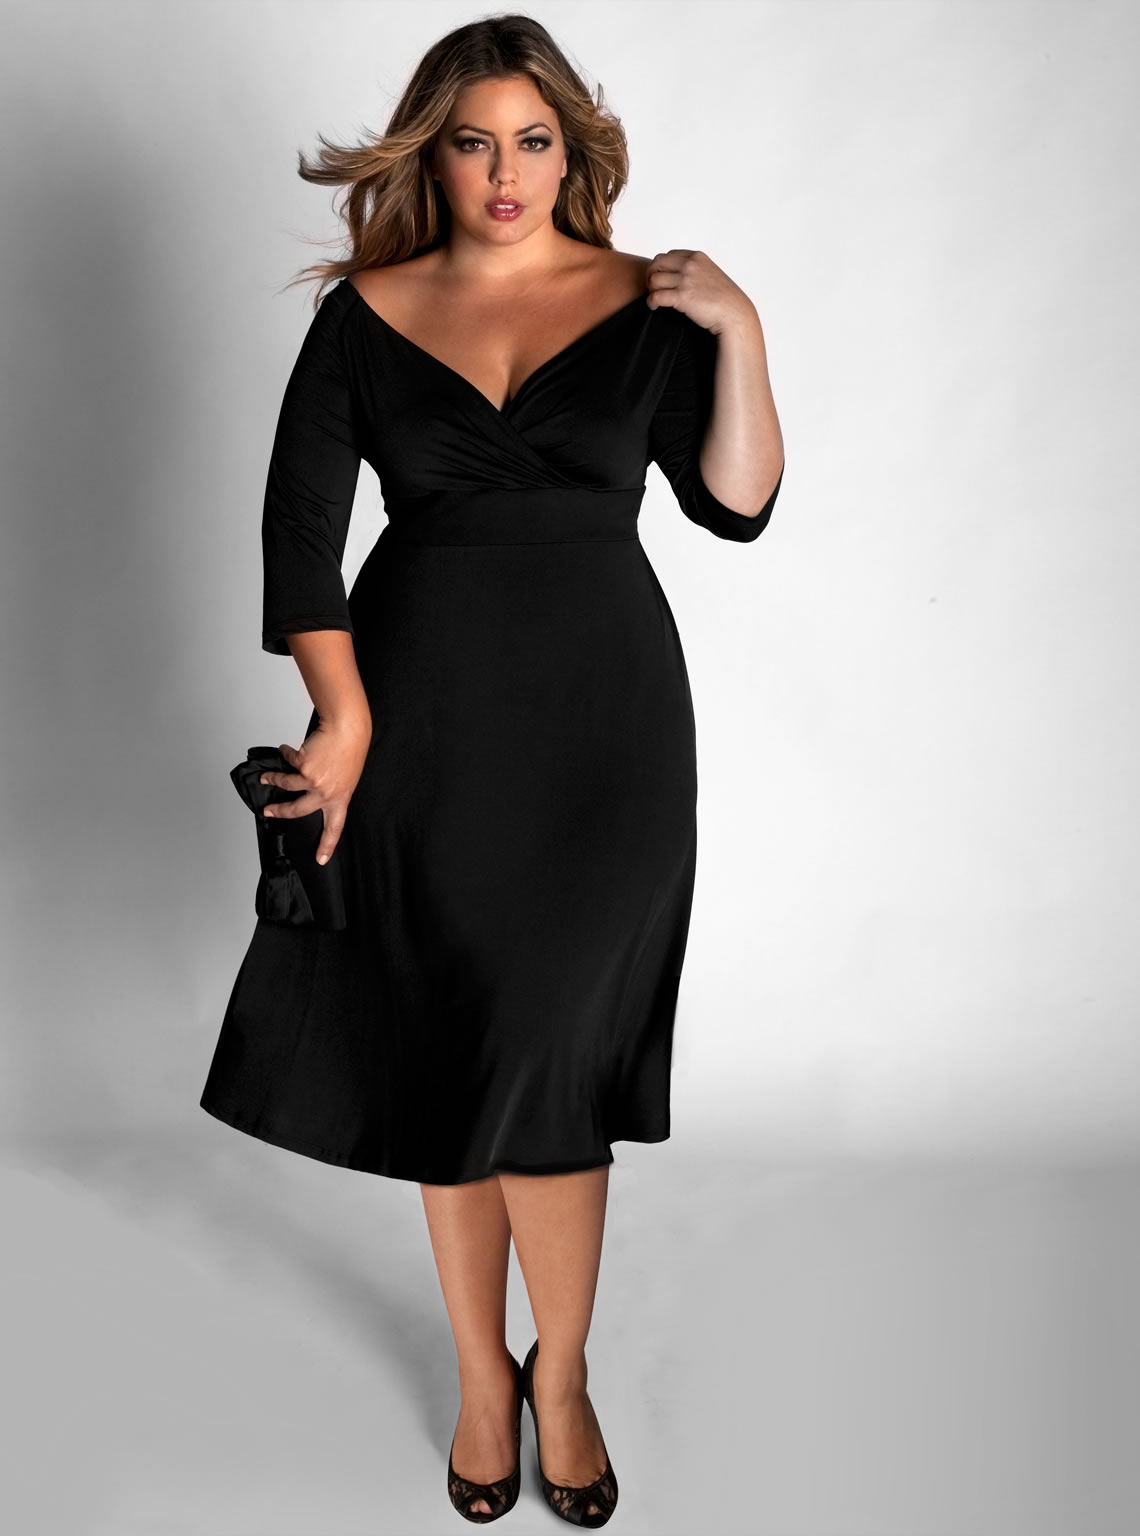 Cheap Little Black Dress Size 14 2014-2015 | Fashion ...